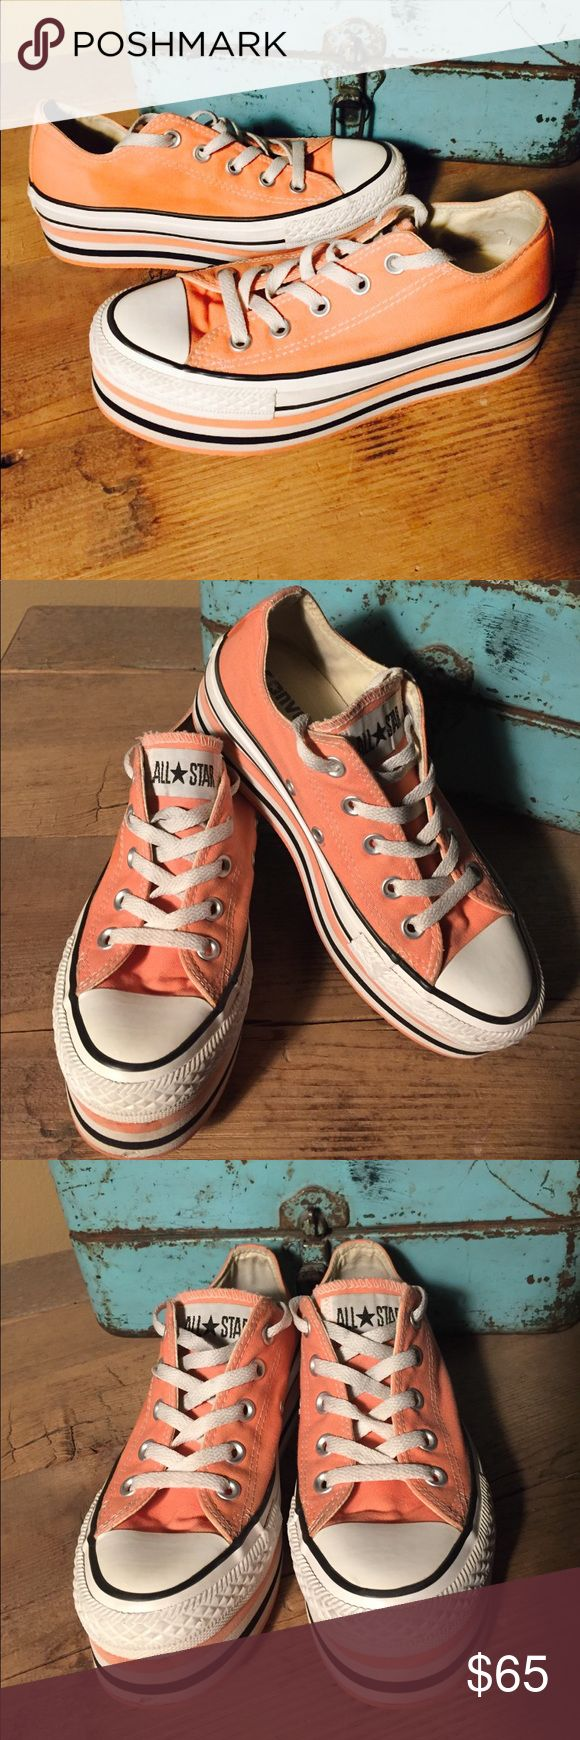 """Converse Ox Coral Double Platform Women's Size 5.5. 2"""" Platform Preowned and plenty of use left in these funky sneakers! Only flaw on rubber trim is shown on last photo and it's on right shoe. Gently worn. Super cute and for sure to be an eye catcher. What a great price for you! Retails for $175 Converse Shoes Sneakers"""